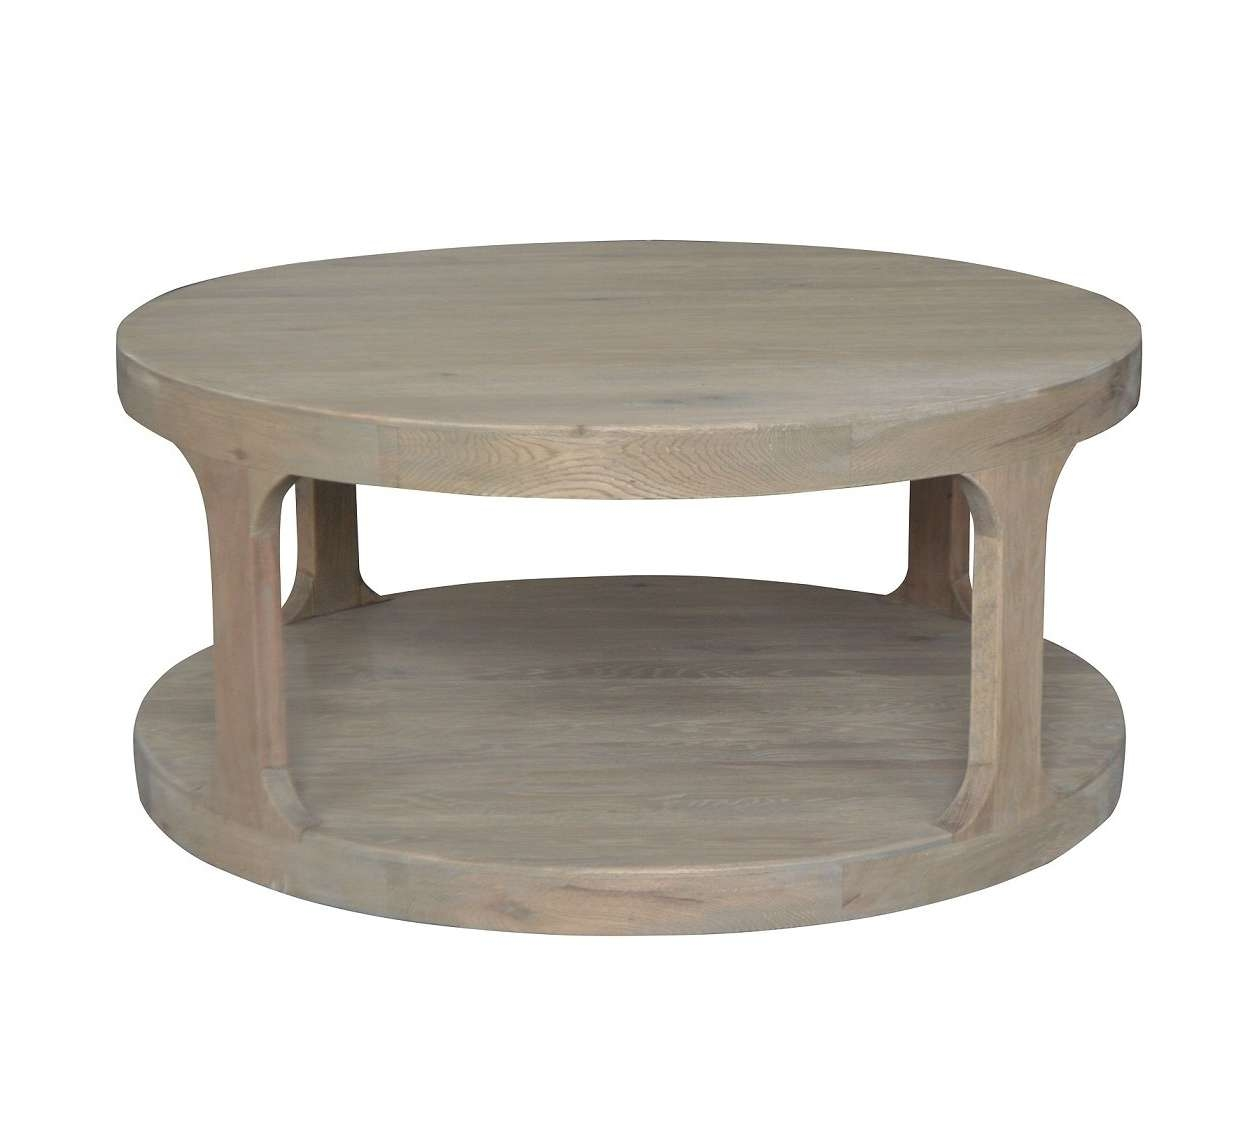 Industrial Round Coffee Table – Writehookstudio Intended For Fashionable Industrial Round Coffee Tables (View 9 of 20)